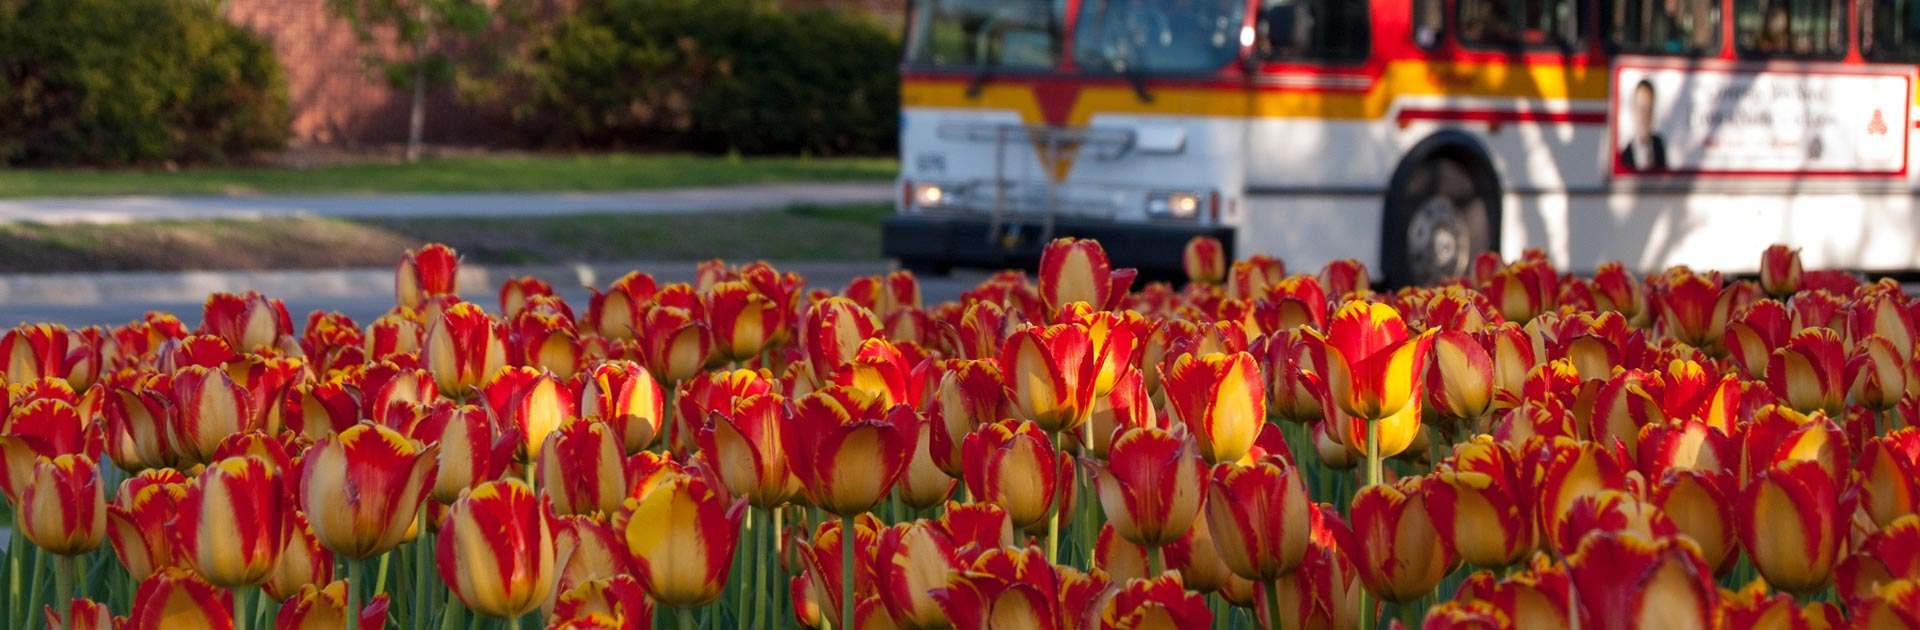 Bus-on-Osborn-Road-Cyclone-Tulips